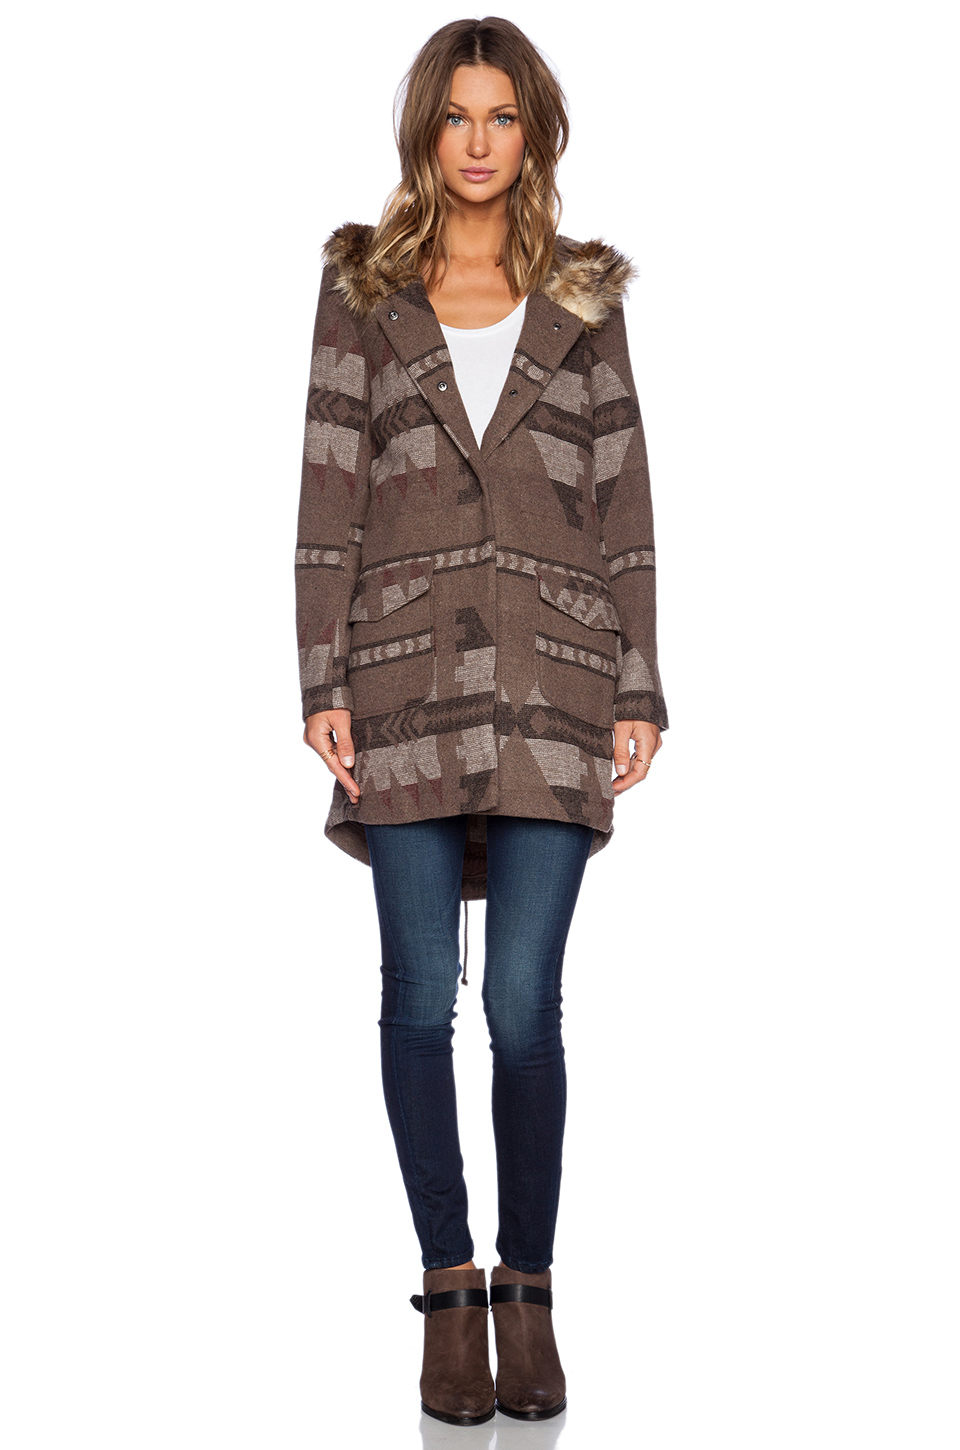 Bb dakota negeen patterned coat in tobacco from revolveclothing.com